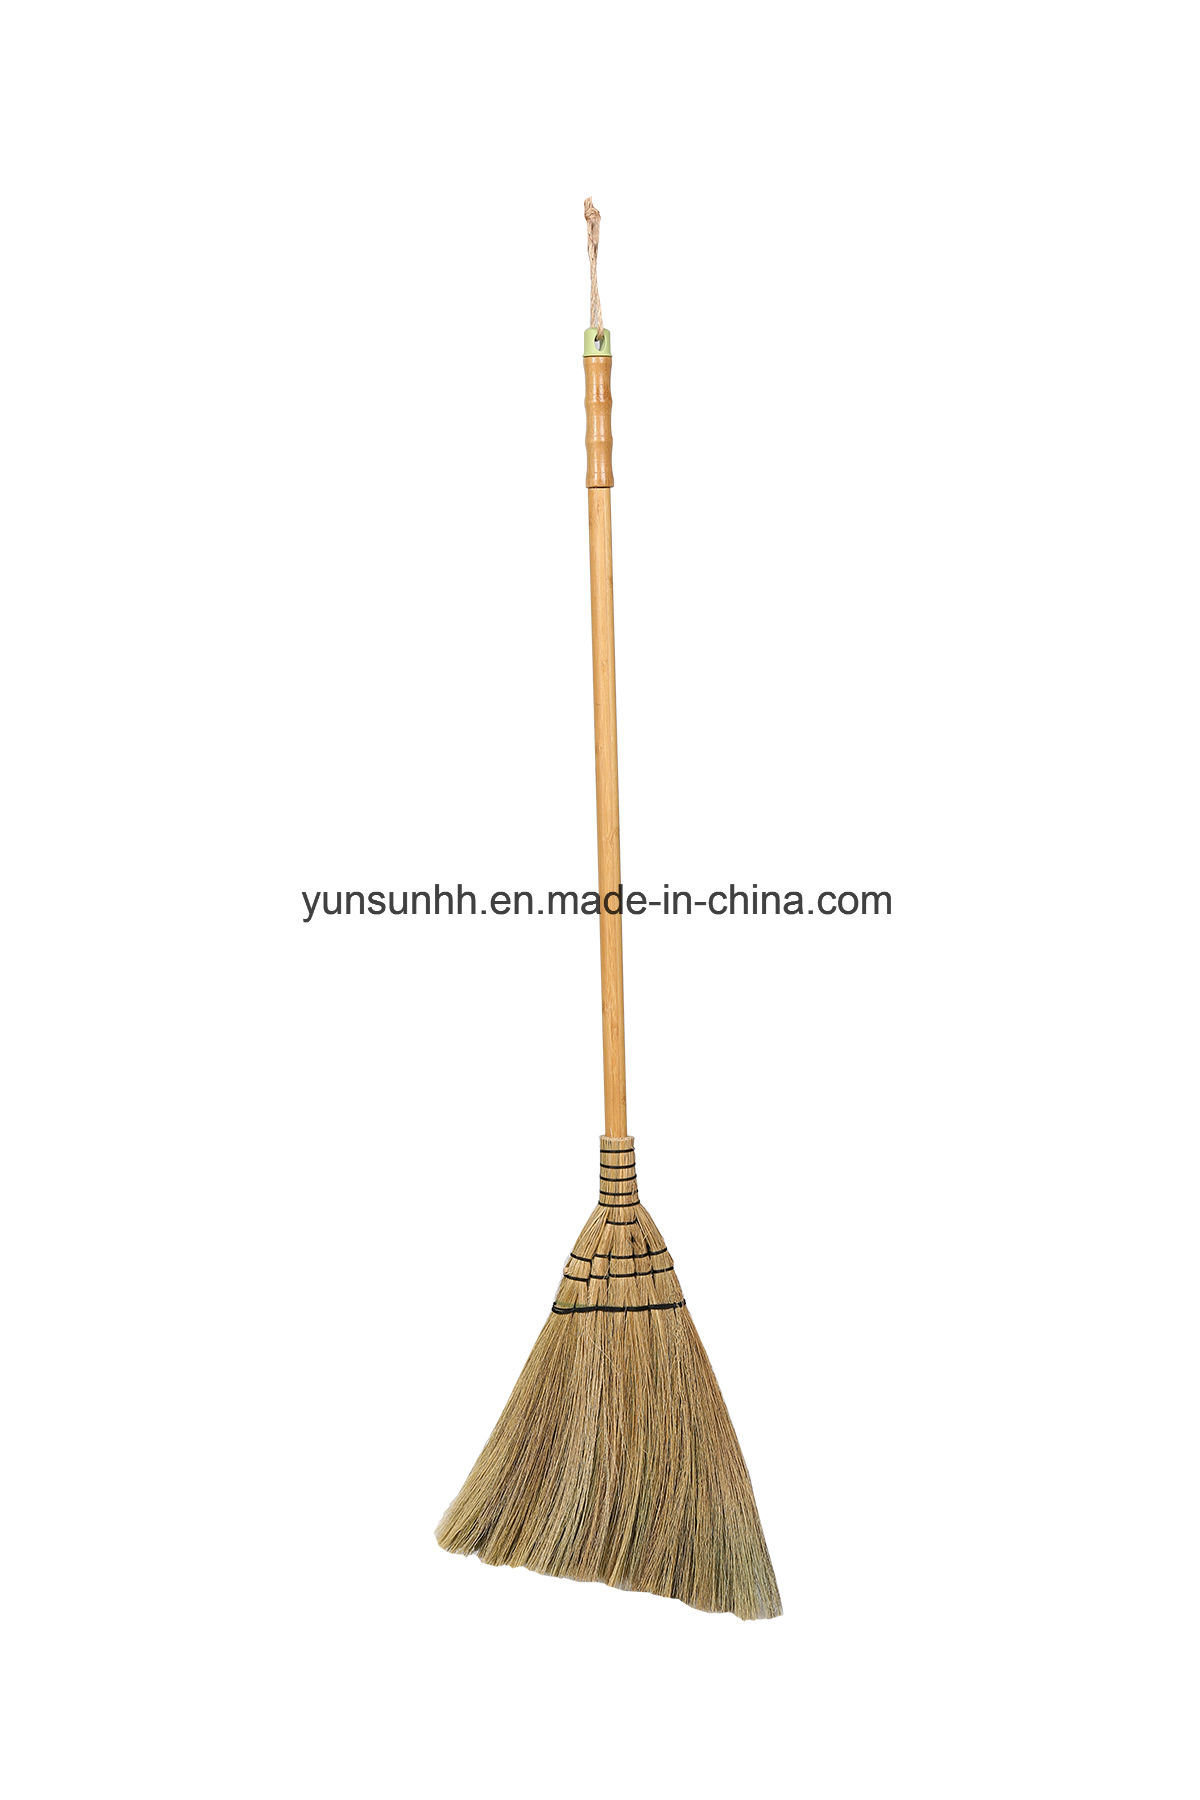 Broom /Mang Grass Broom/ Sorghum Broom